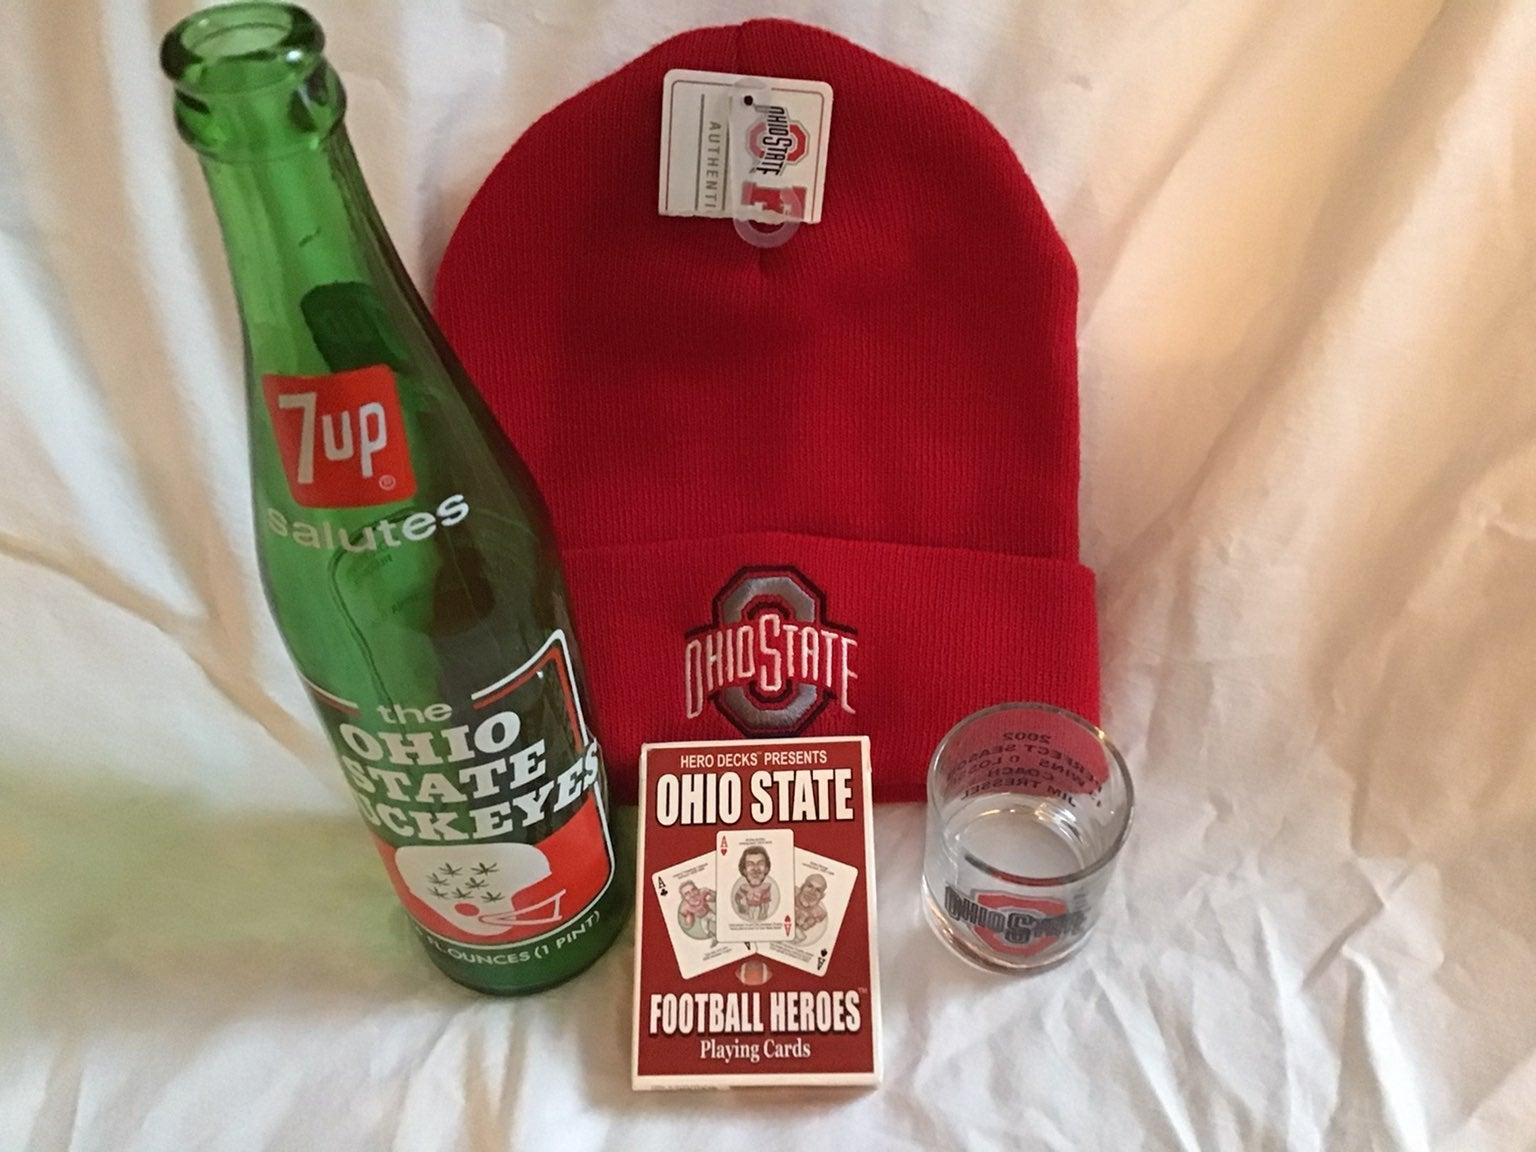 Ohio State Buckeyes lot 4 hat glass 7up